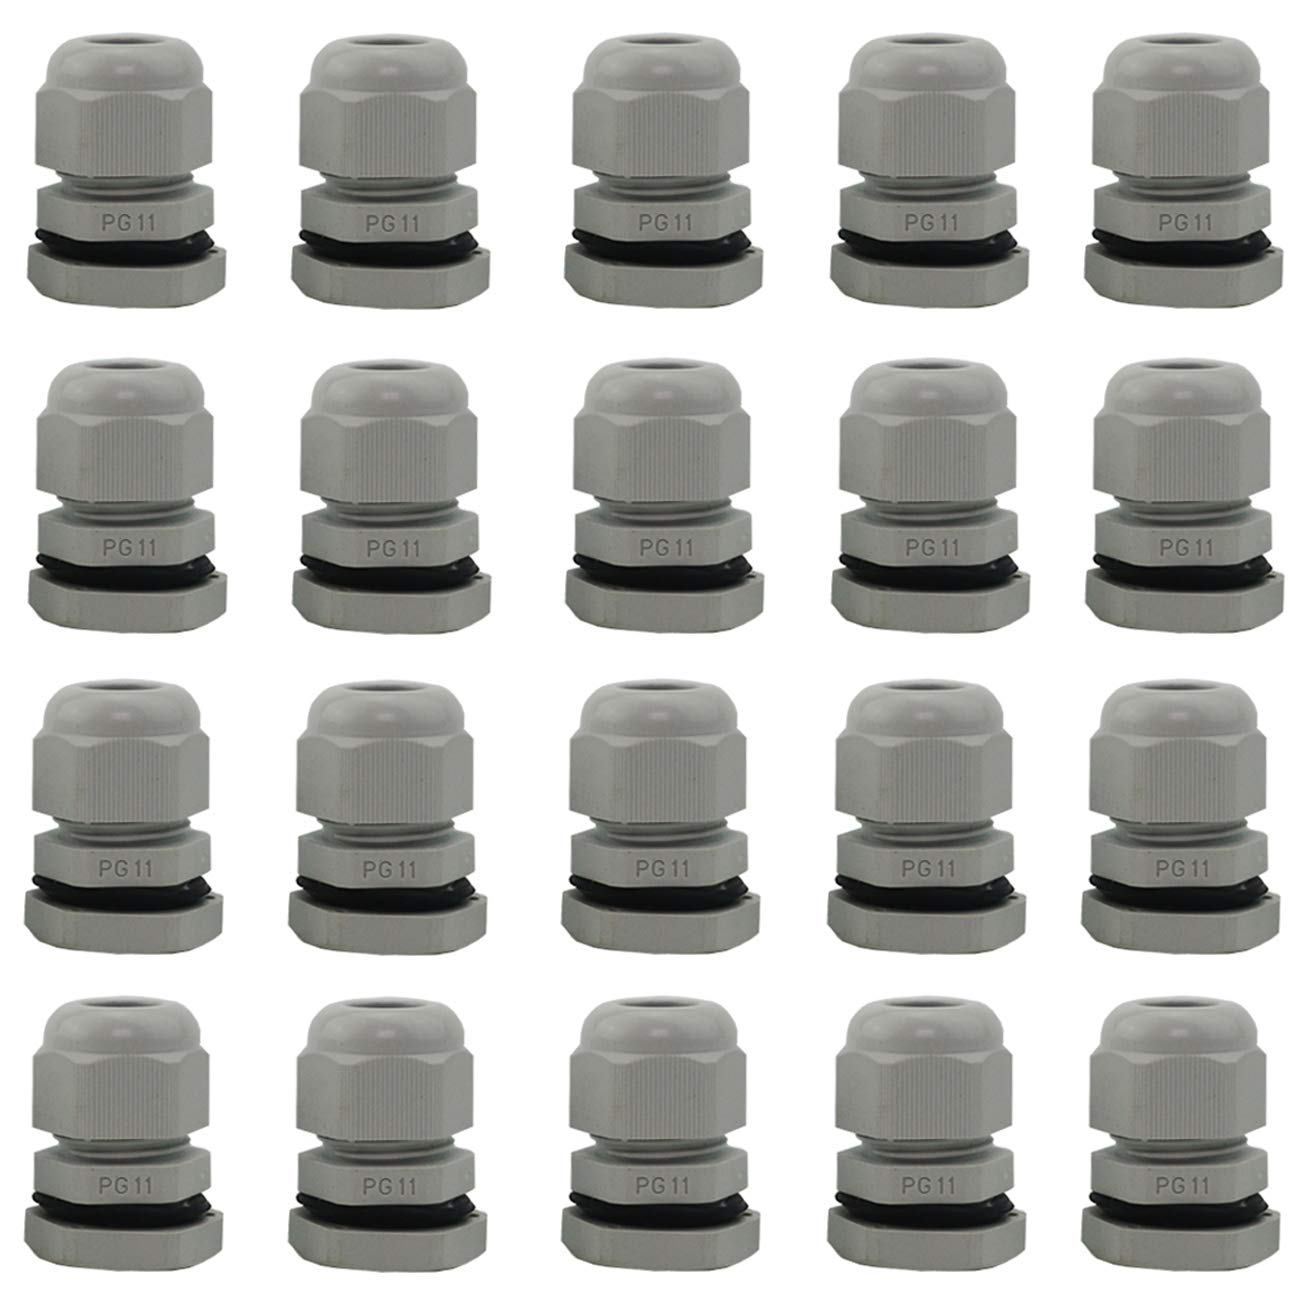 PG13.5 Ogrmar 20 Pieces Nylon Plastic Waterproof Adjustable 6-12mm Cable Gland Joints PG13.5